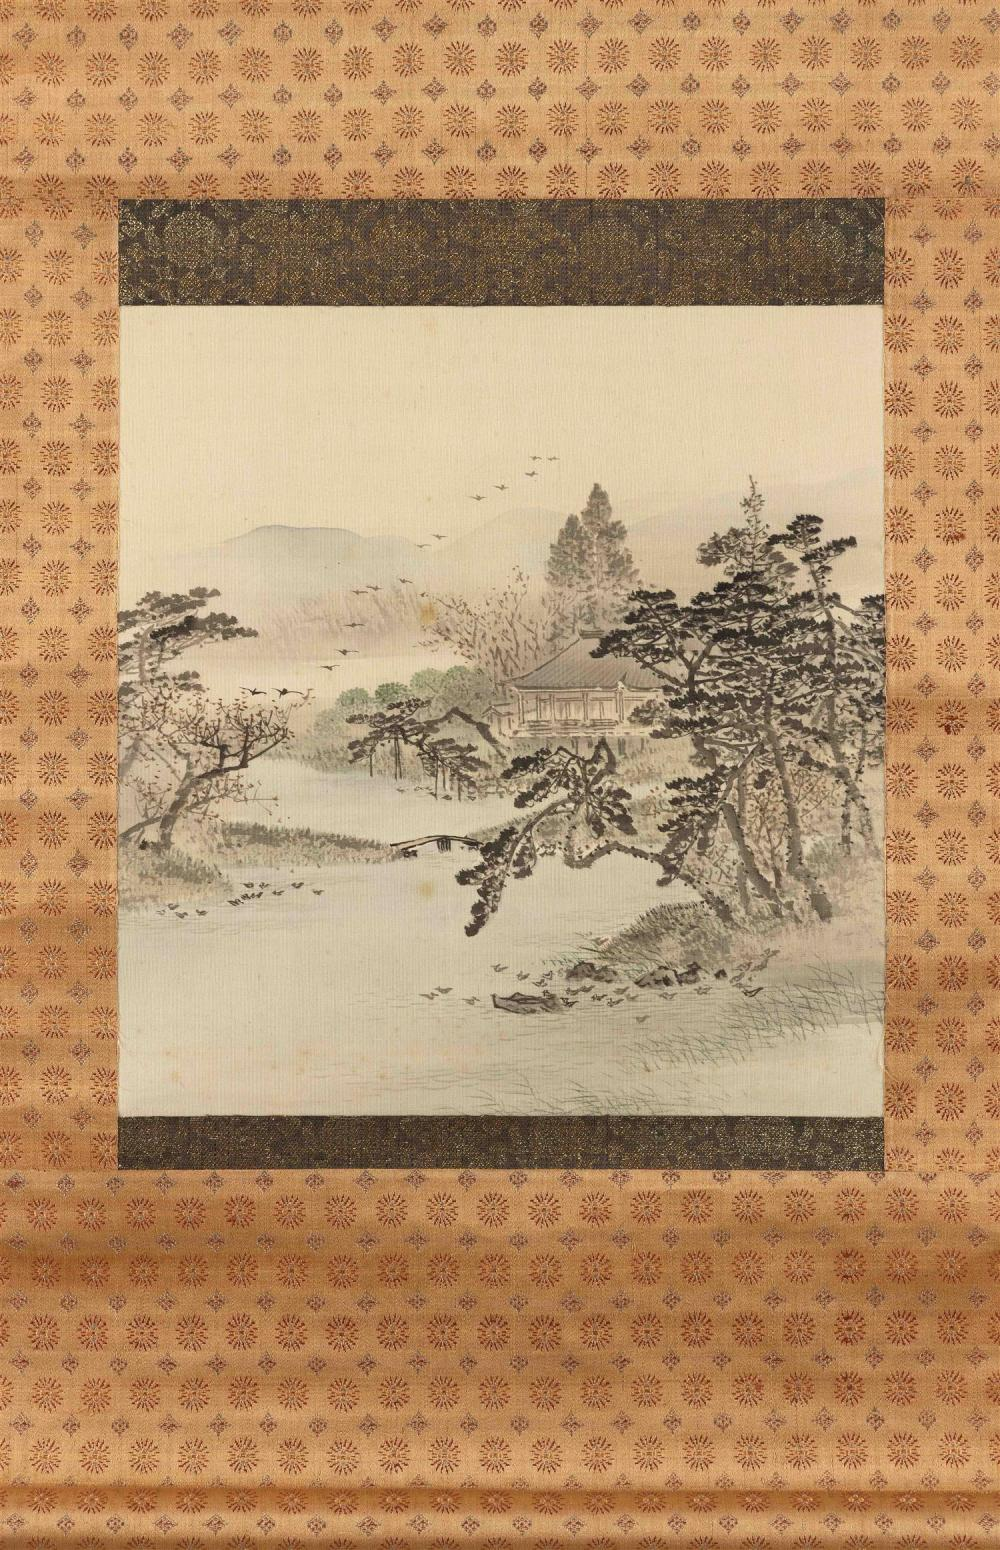 JAPANESE SCROLL PAINTING ON SILK Depicts a rural retreat with pond and flowering trees. 10.4